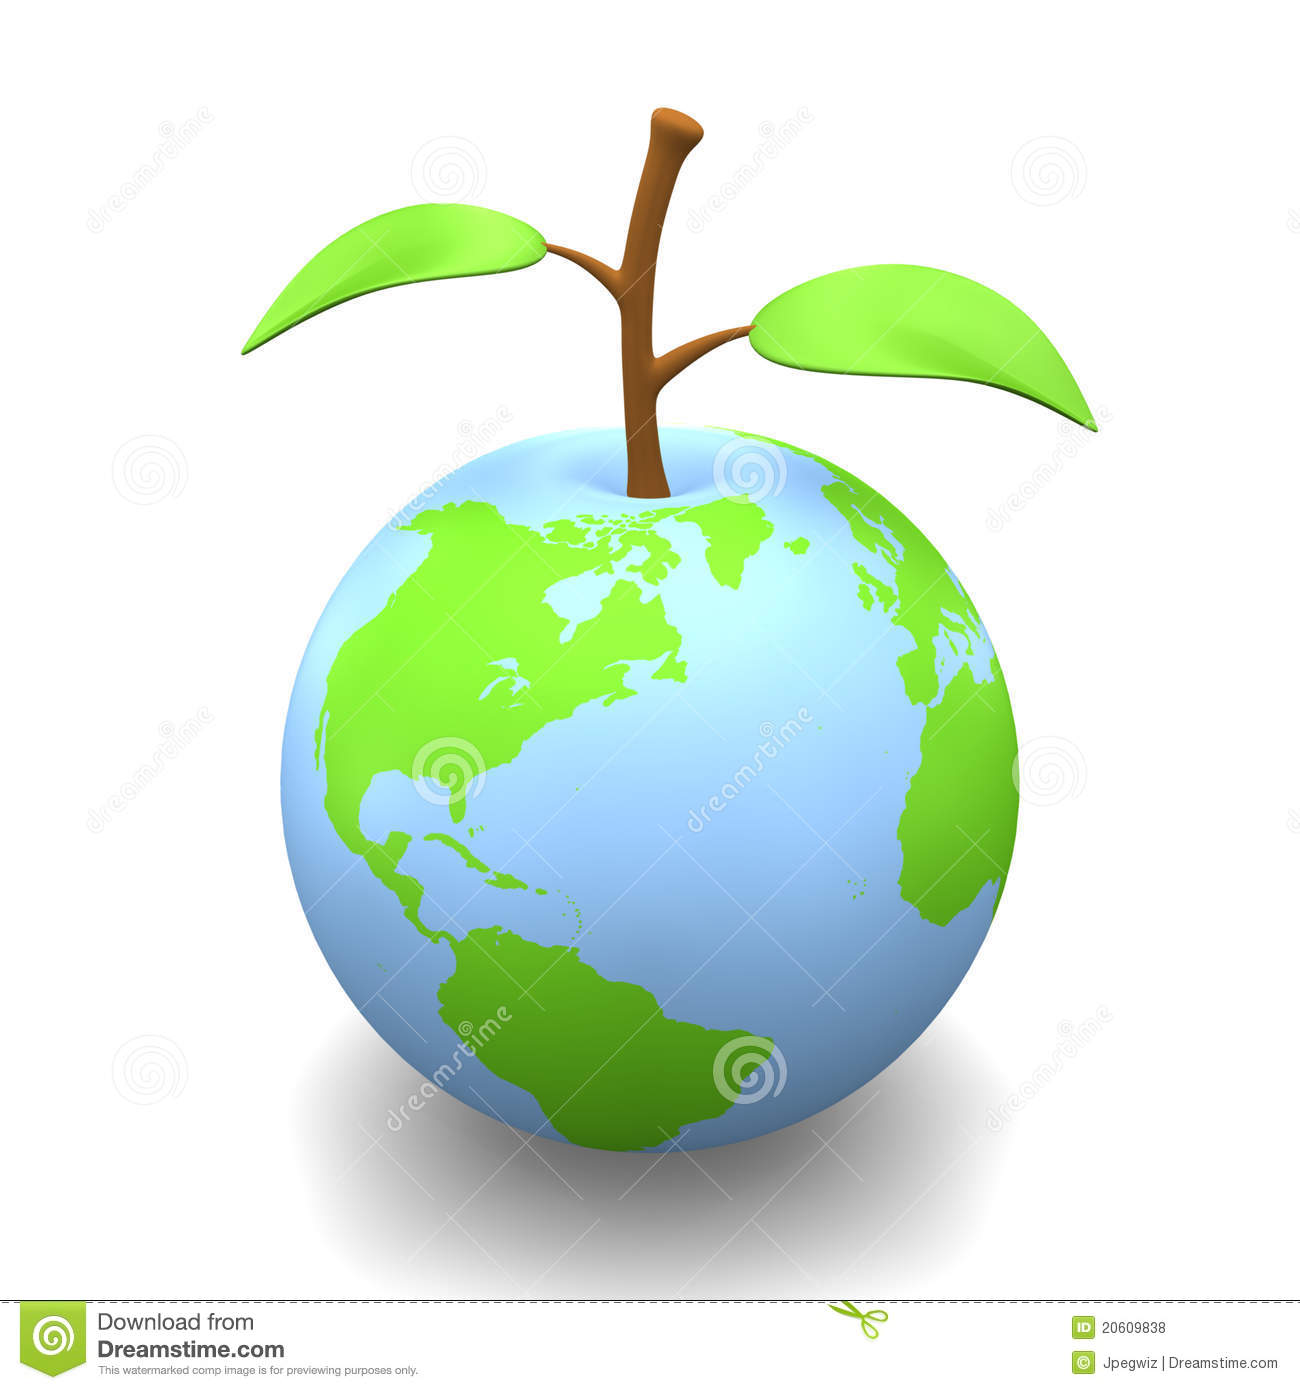 Earth Fruit Royalty Free Stock Photos - Image: 20609838